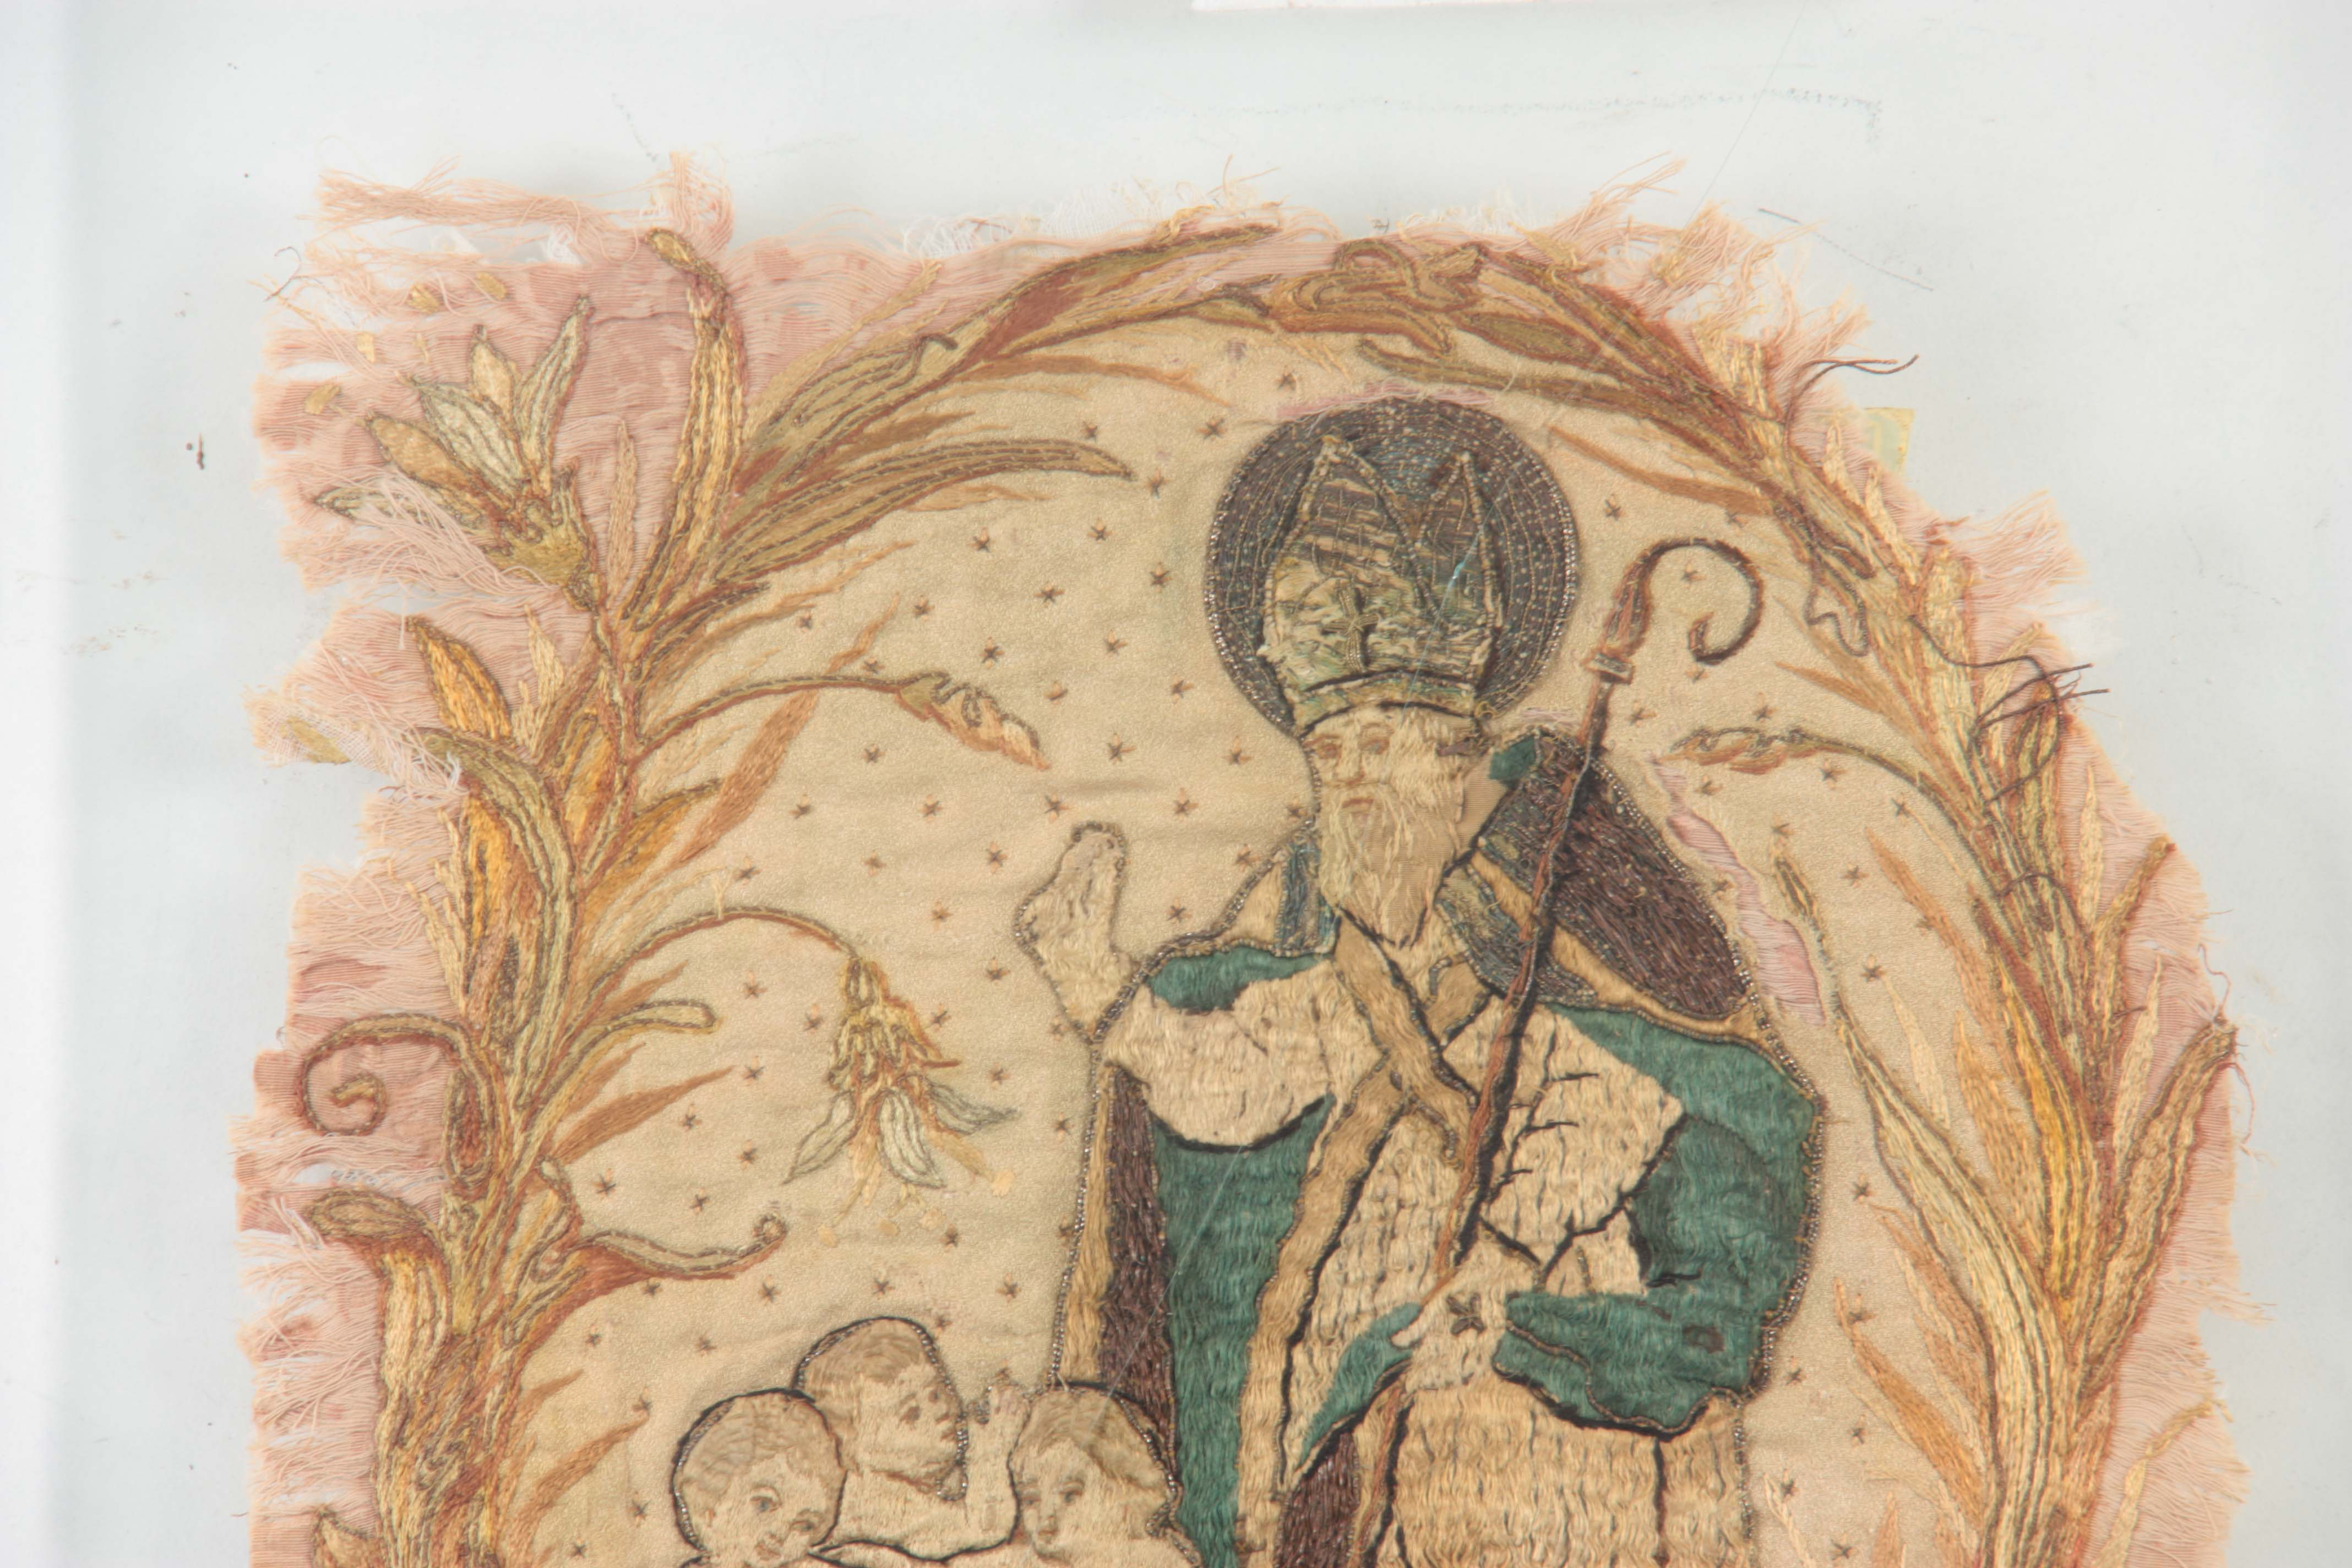 Lot 652 - A 17TH CENTURY SILK EMBROIDERED STUMPWORK PANEL depicting a standing Saint with three infants in a